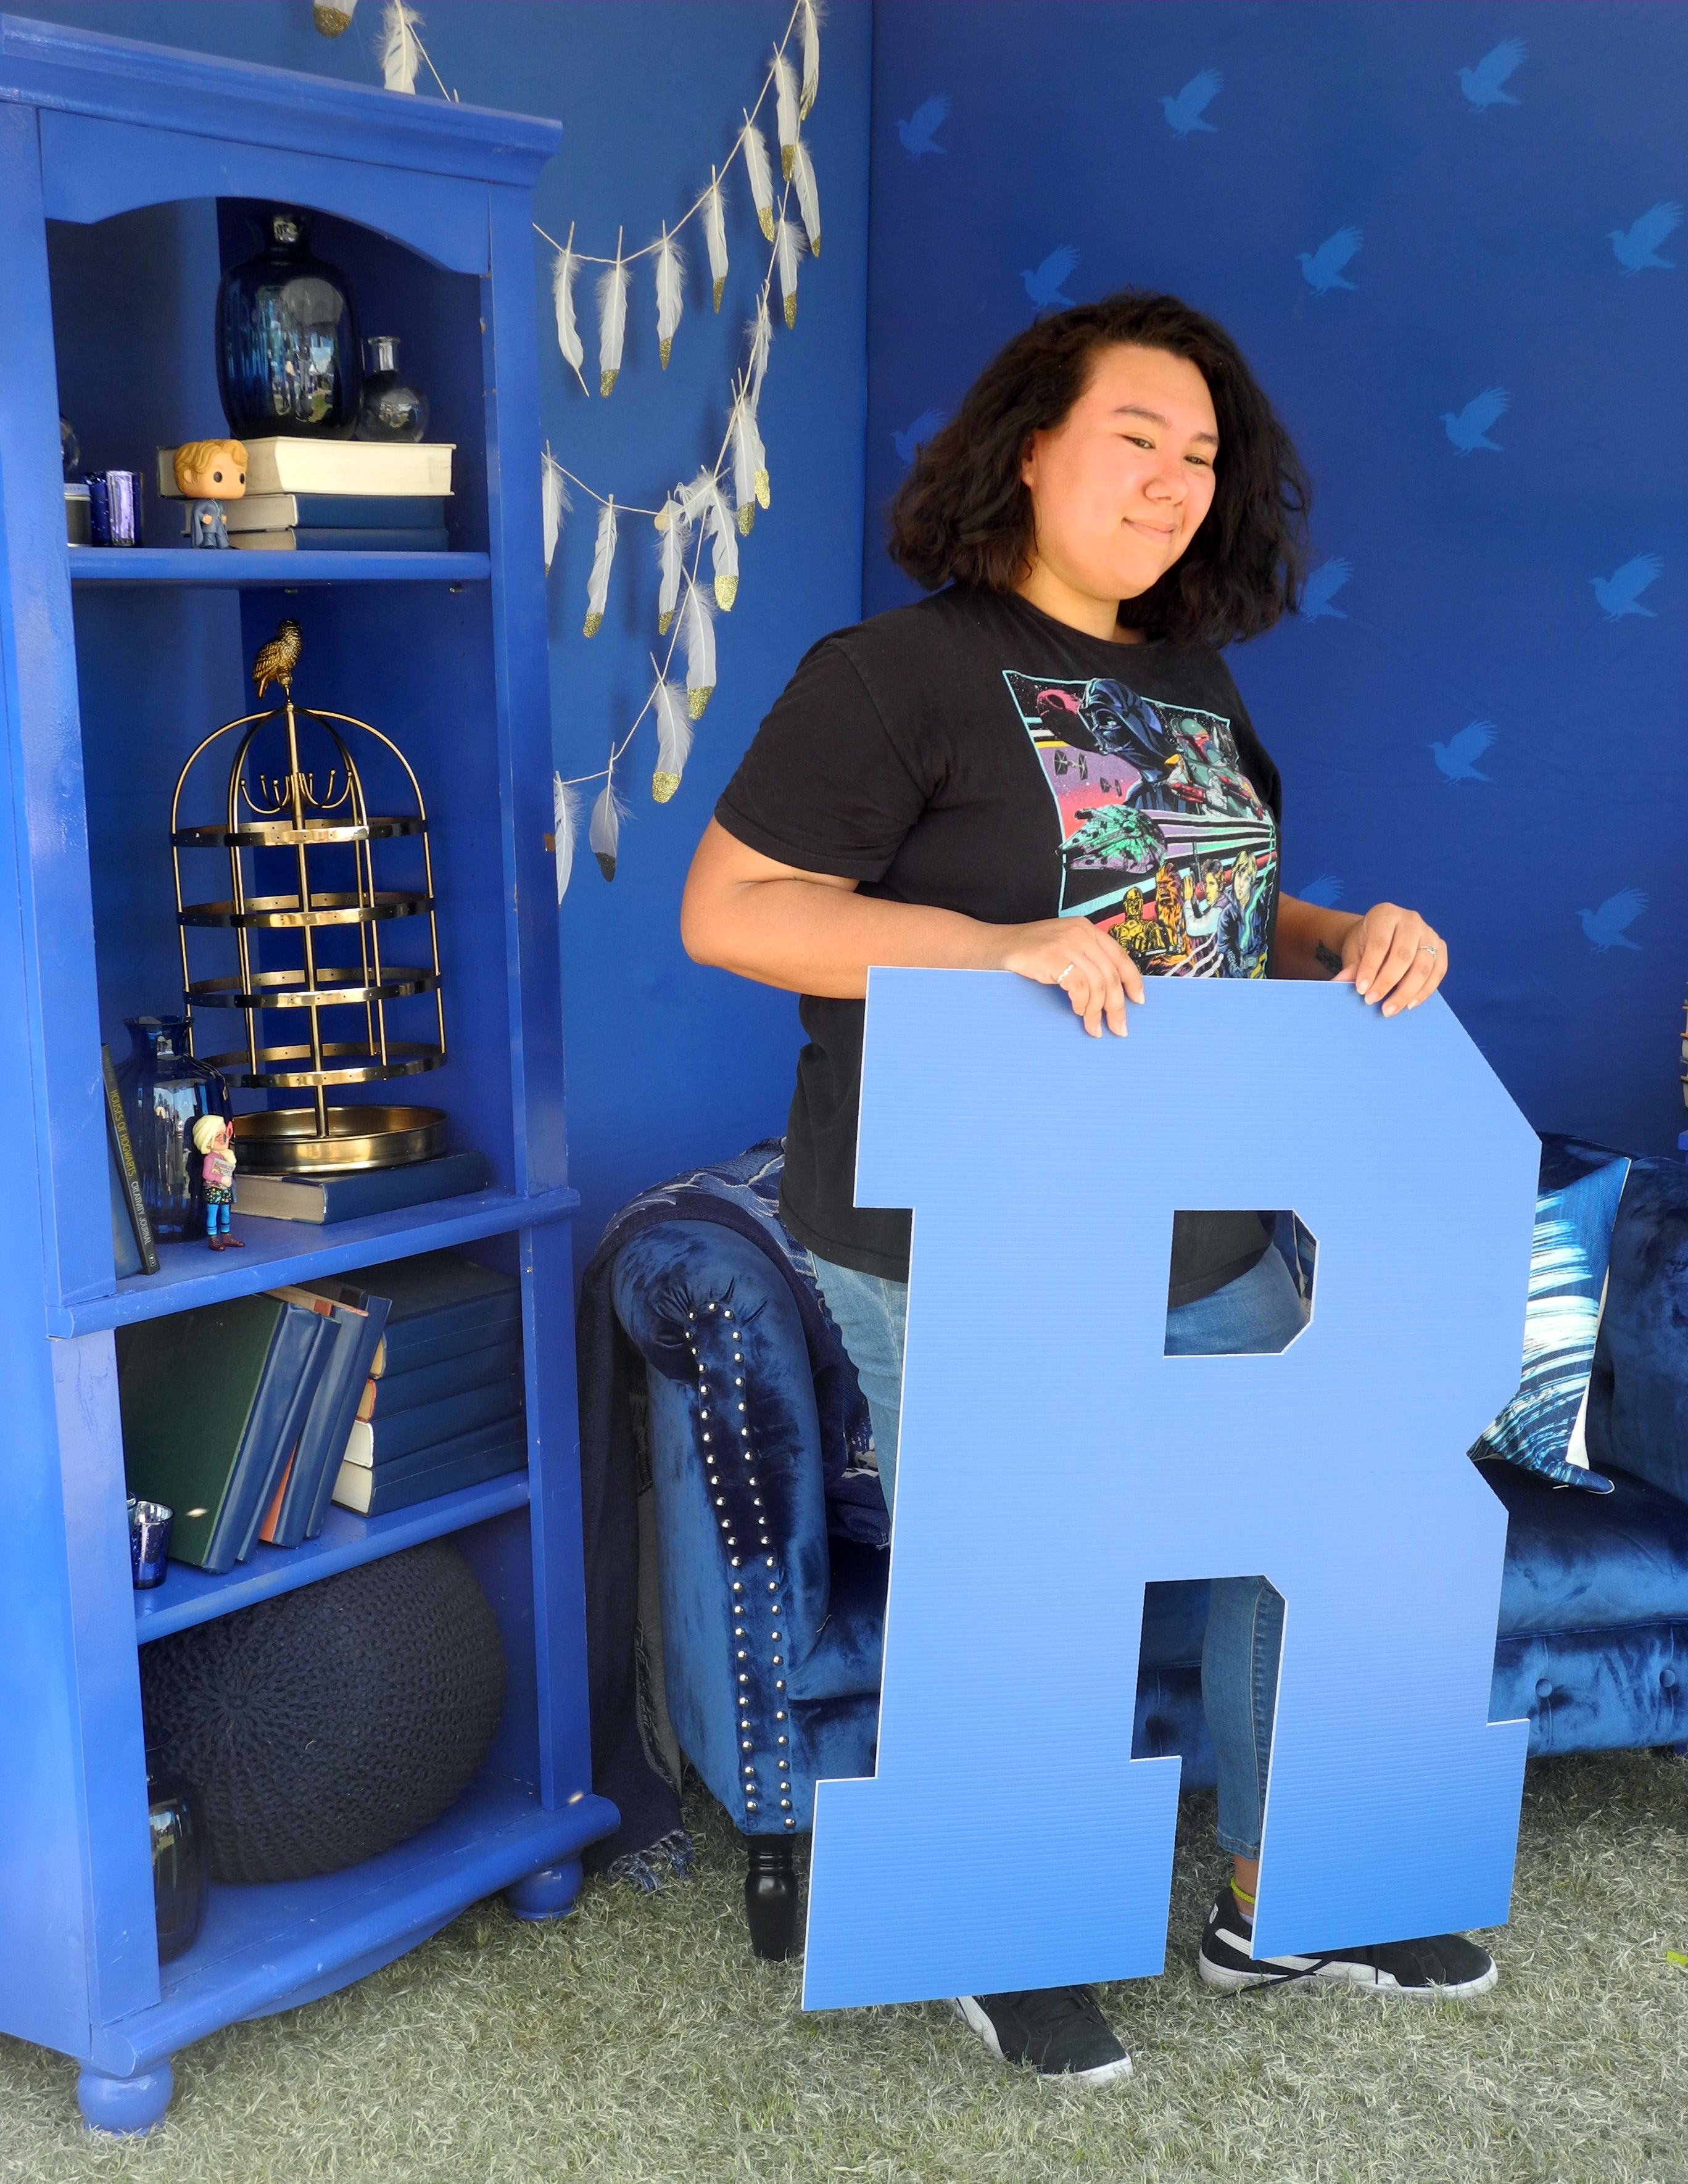 A Ravenclaw student from the University of Arizona shows her House pride during a Back to Hogwarts event at the school.